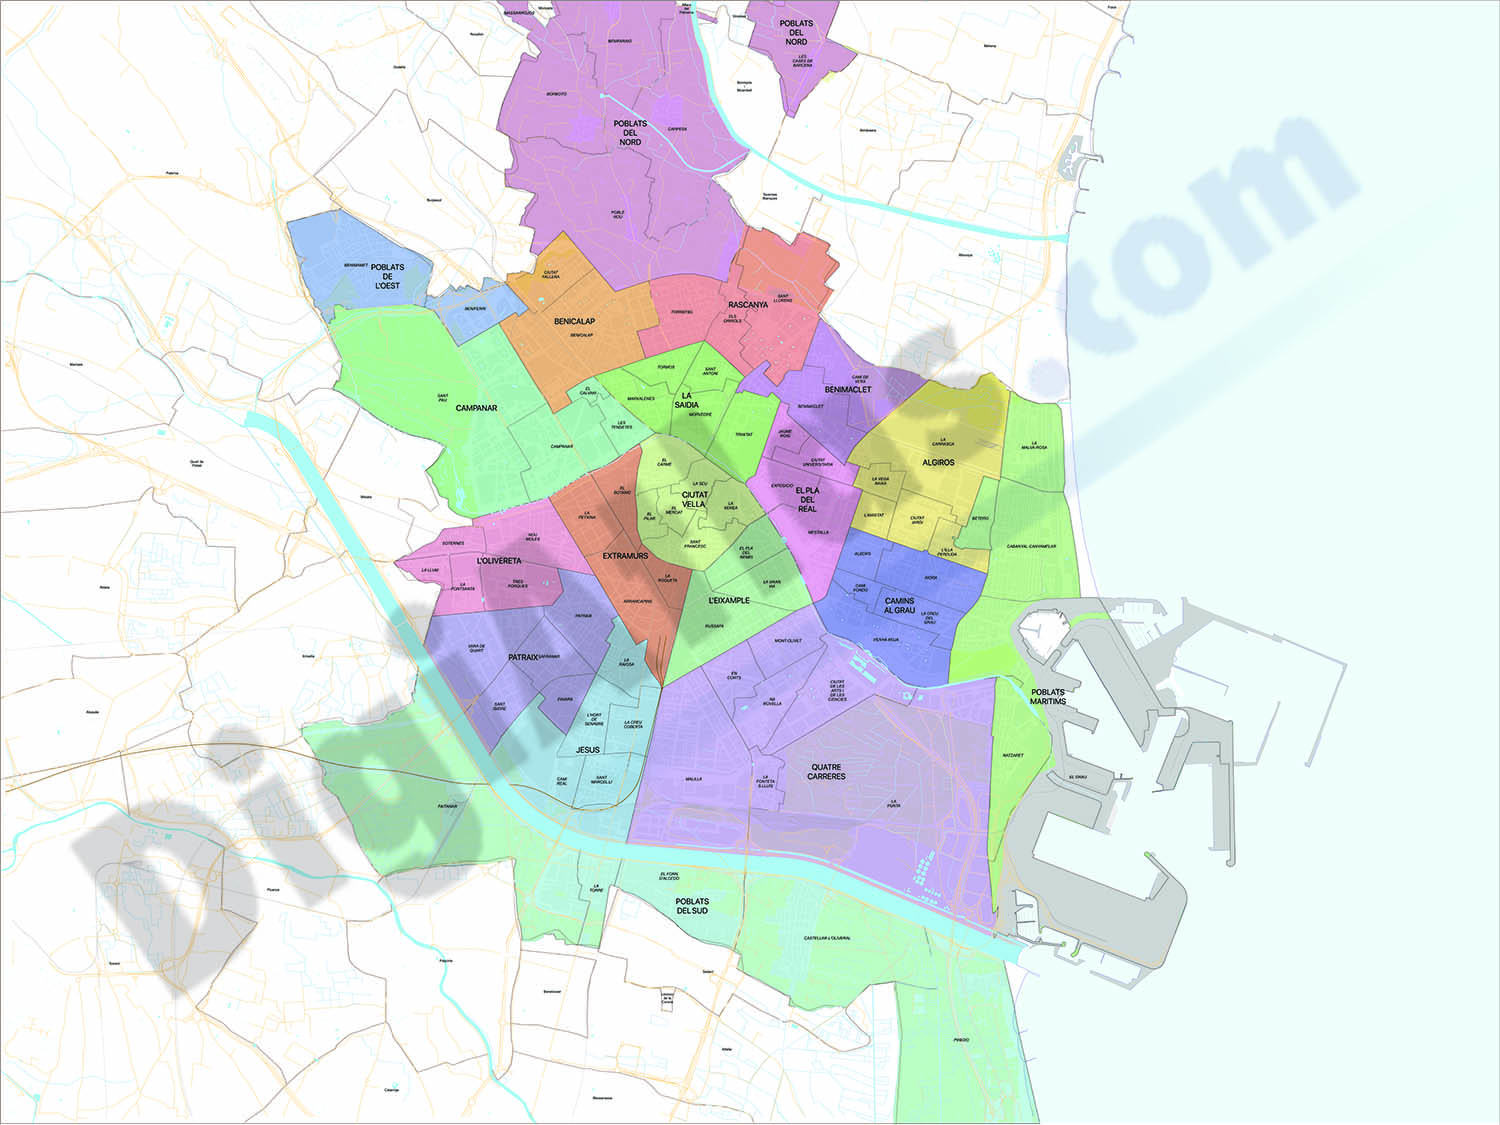 Valencia - districts and neighborhoods